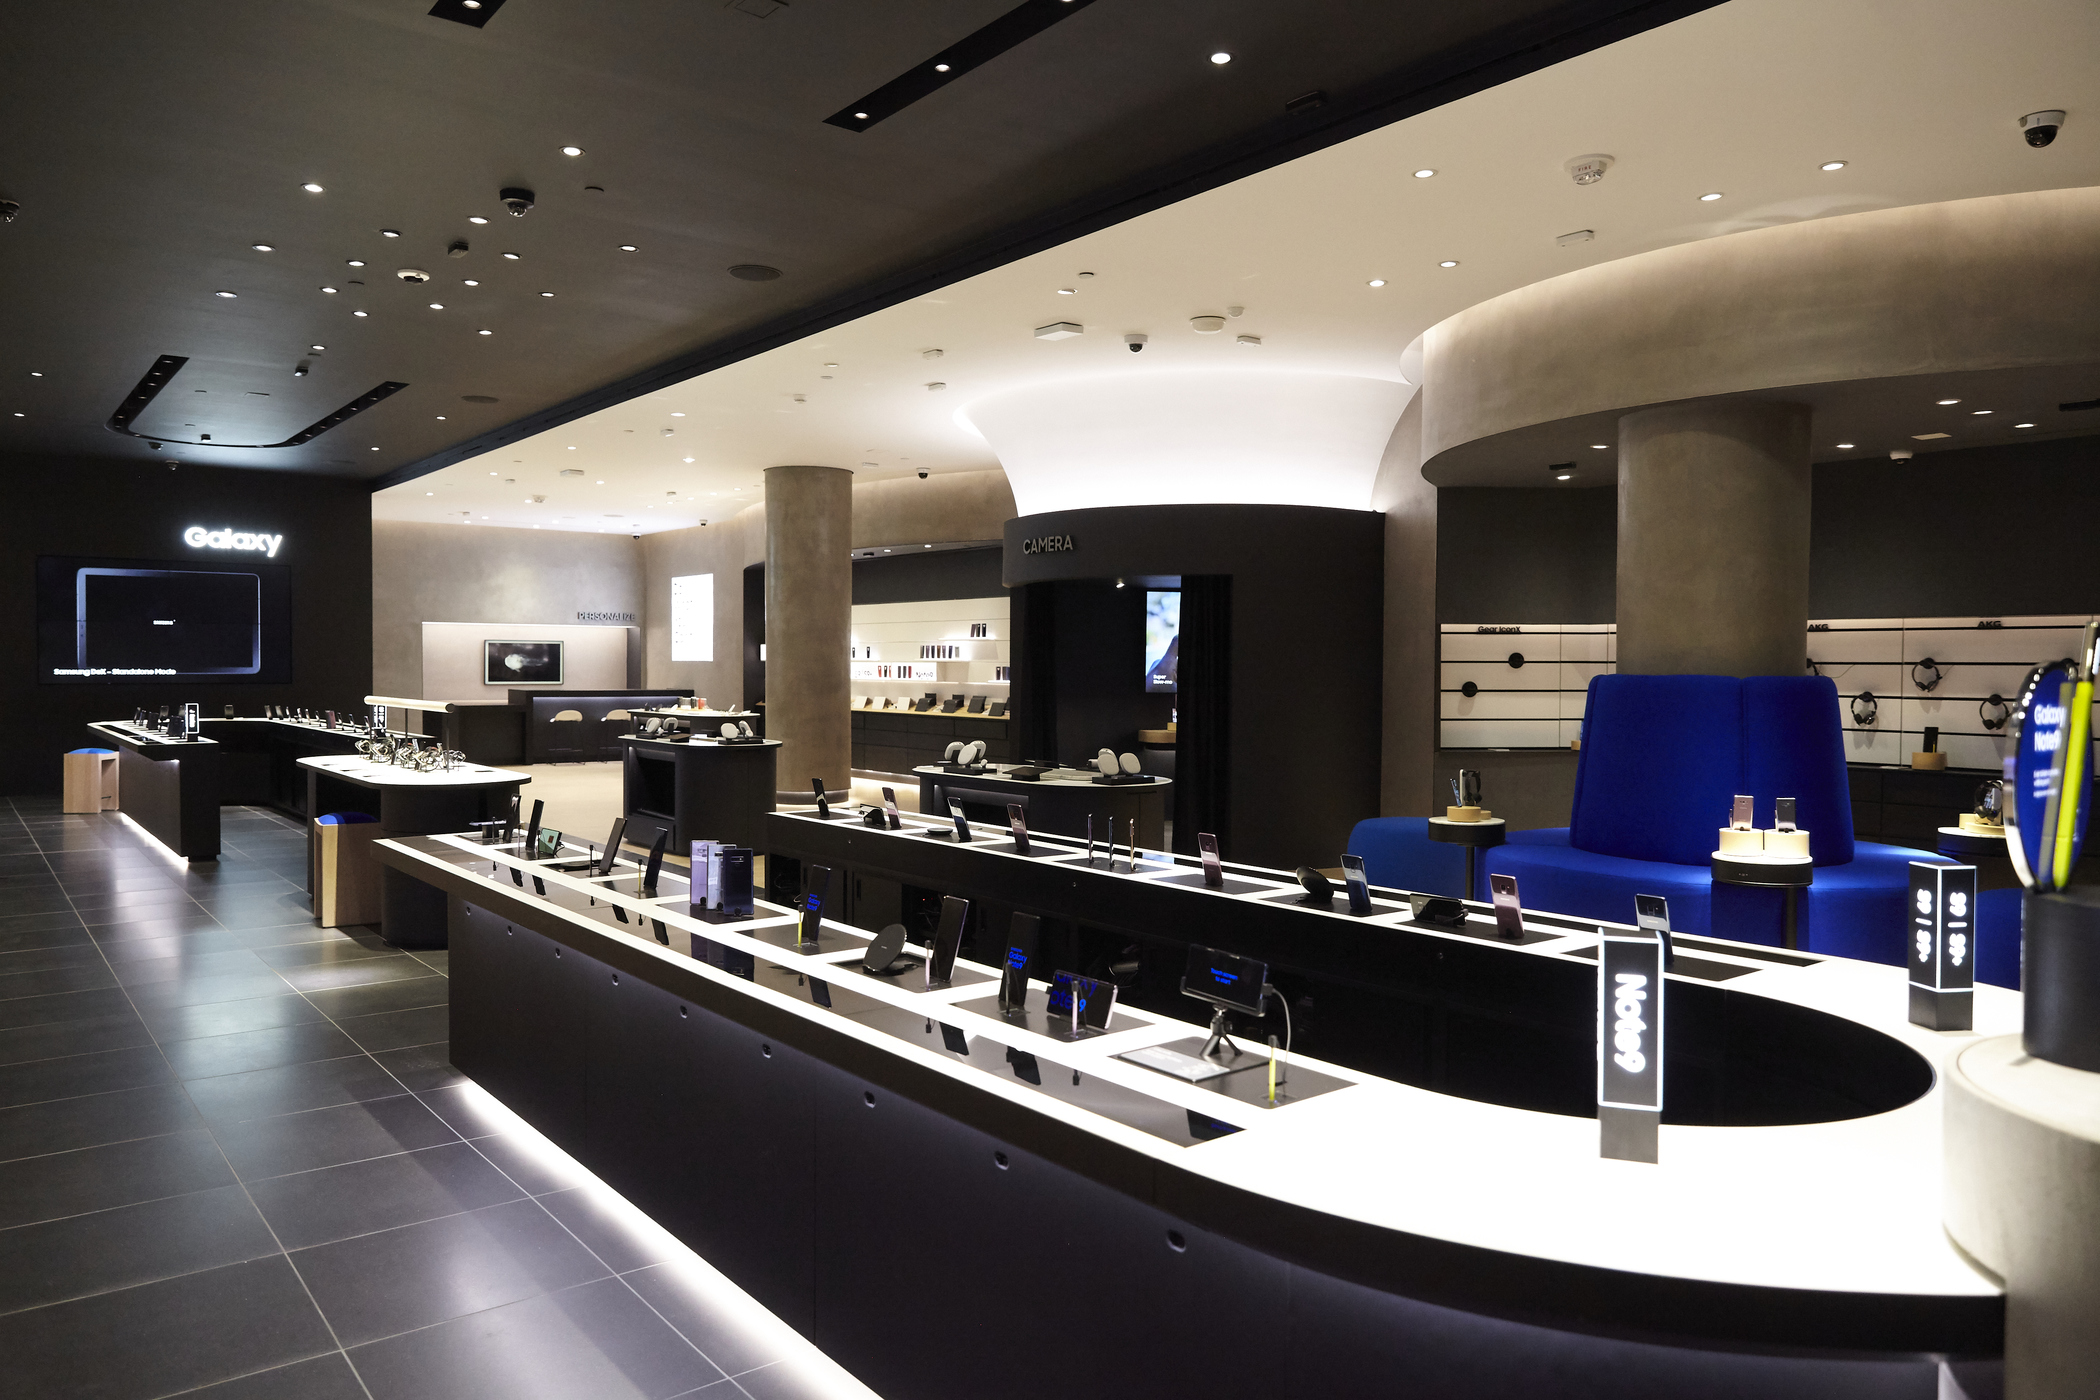 Samsung will open three new Experience Stores in the US